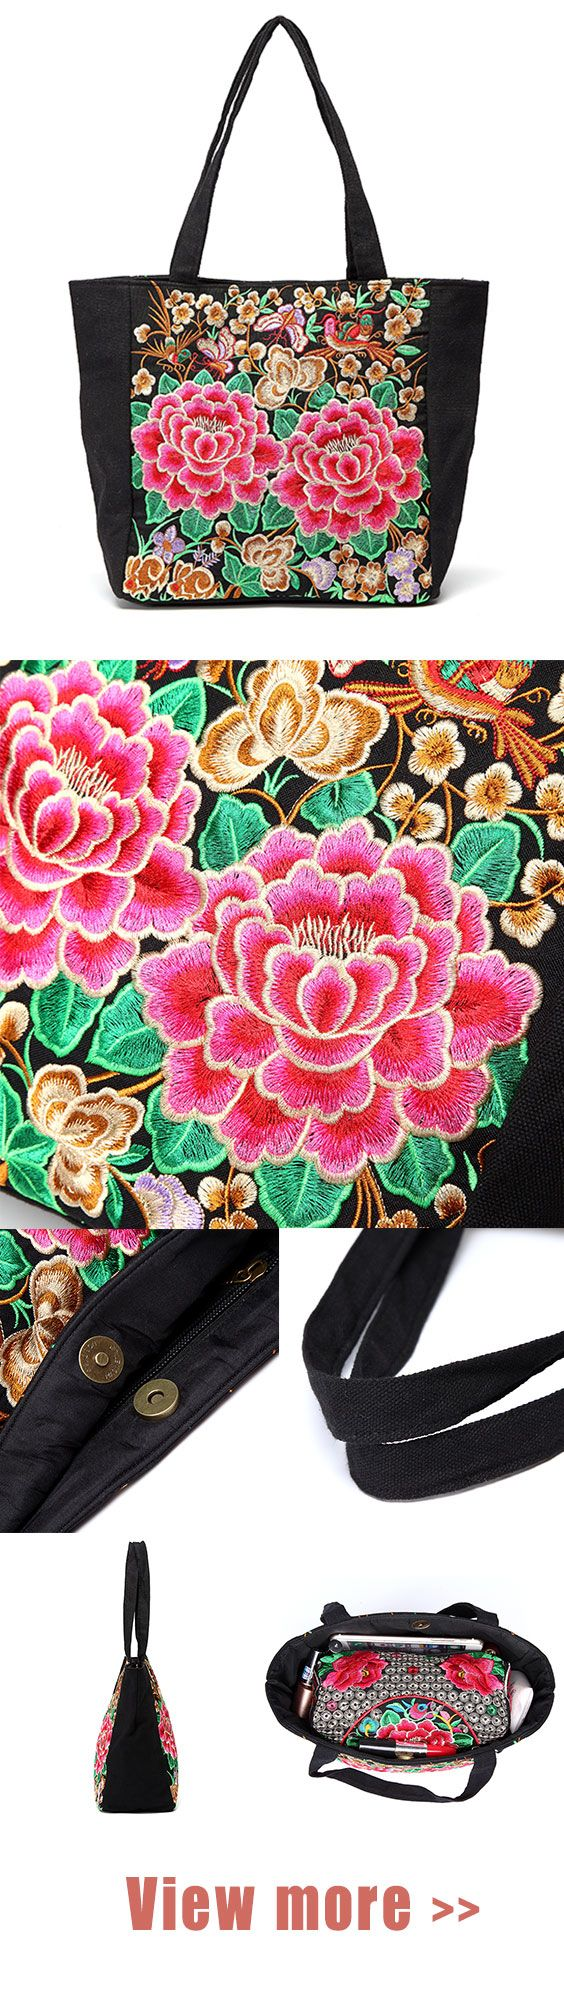 Women Ethnic Embroidery Flowers Vintage Canvas Handbag Casual Clutch Bags 2 Pcs#...